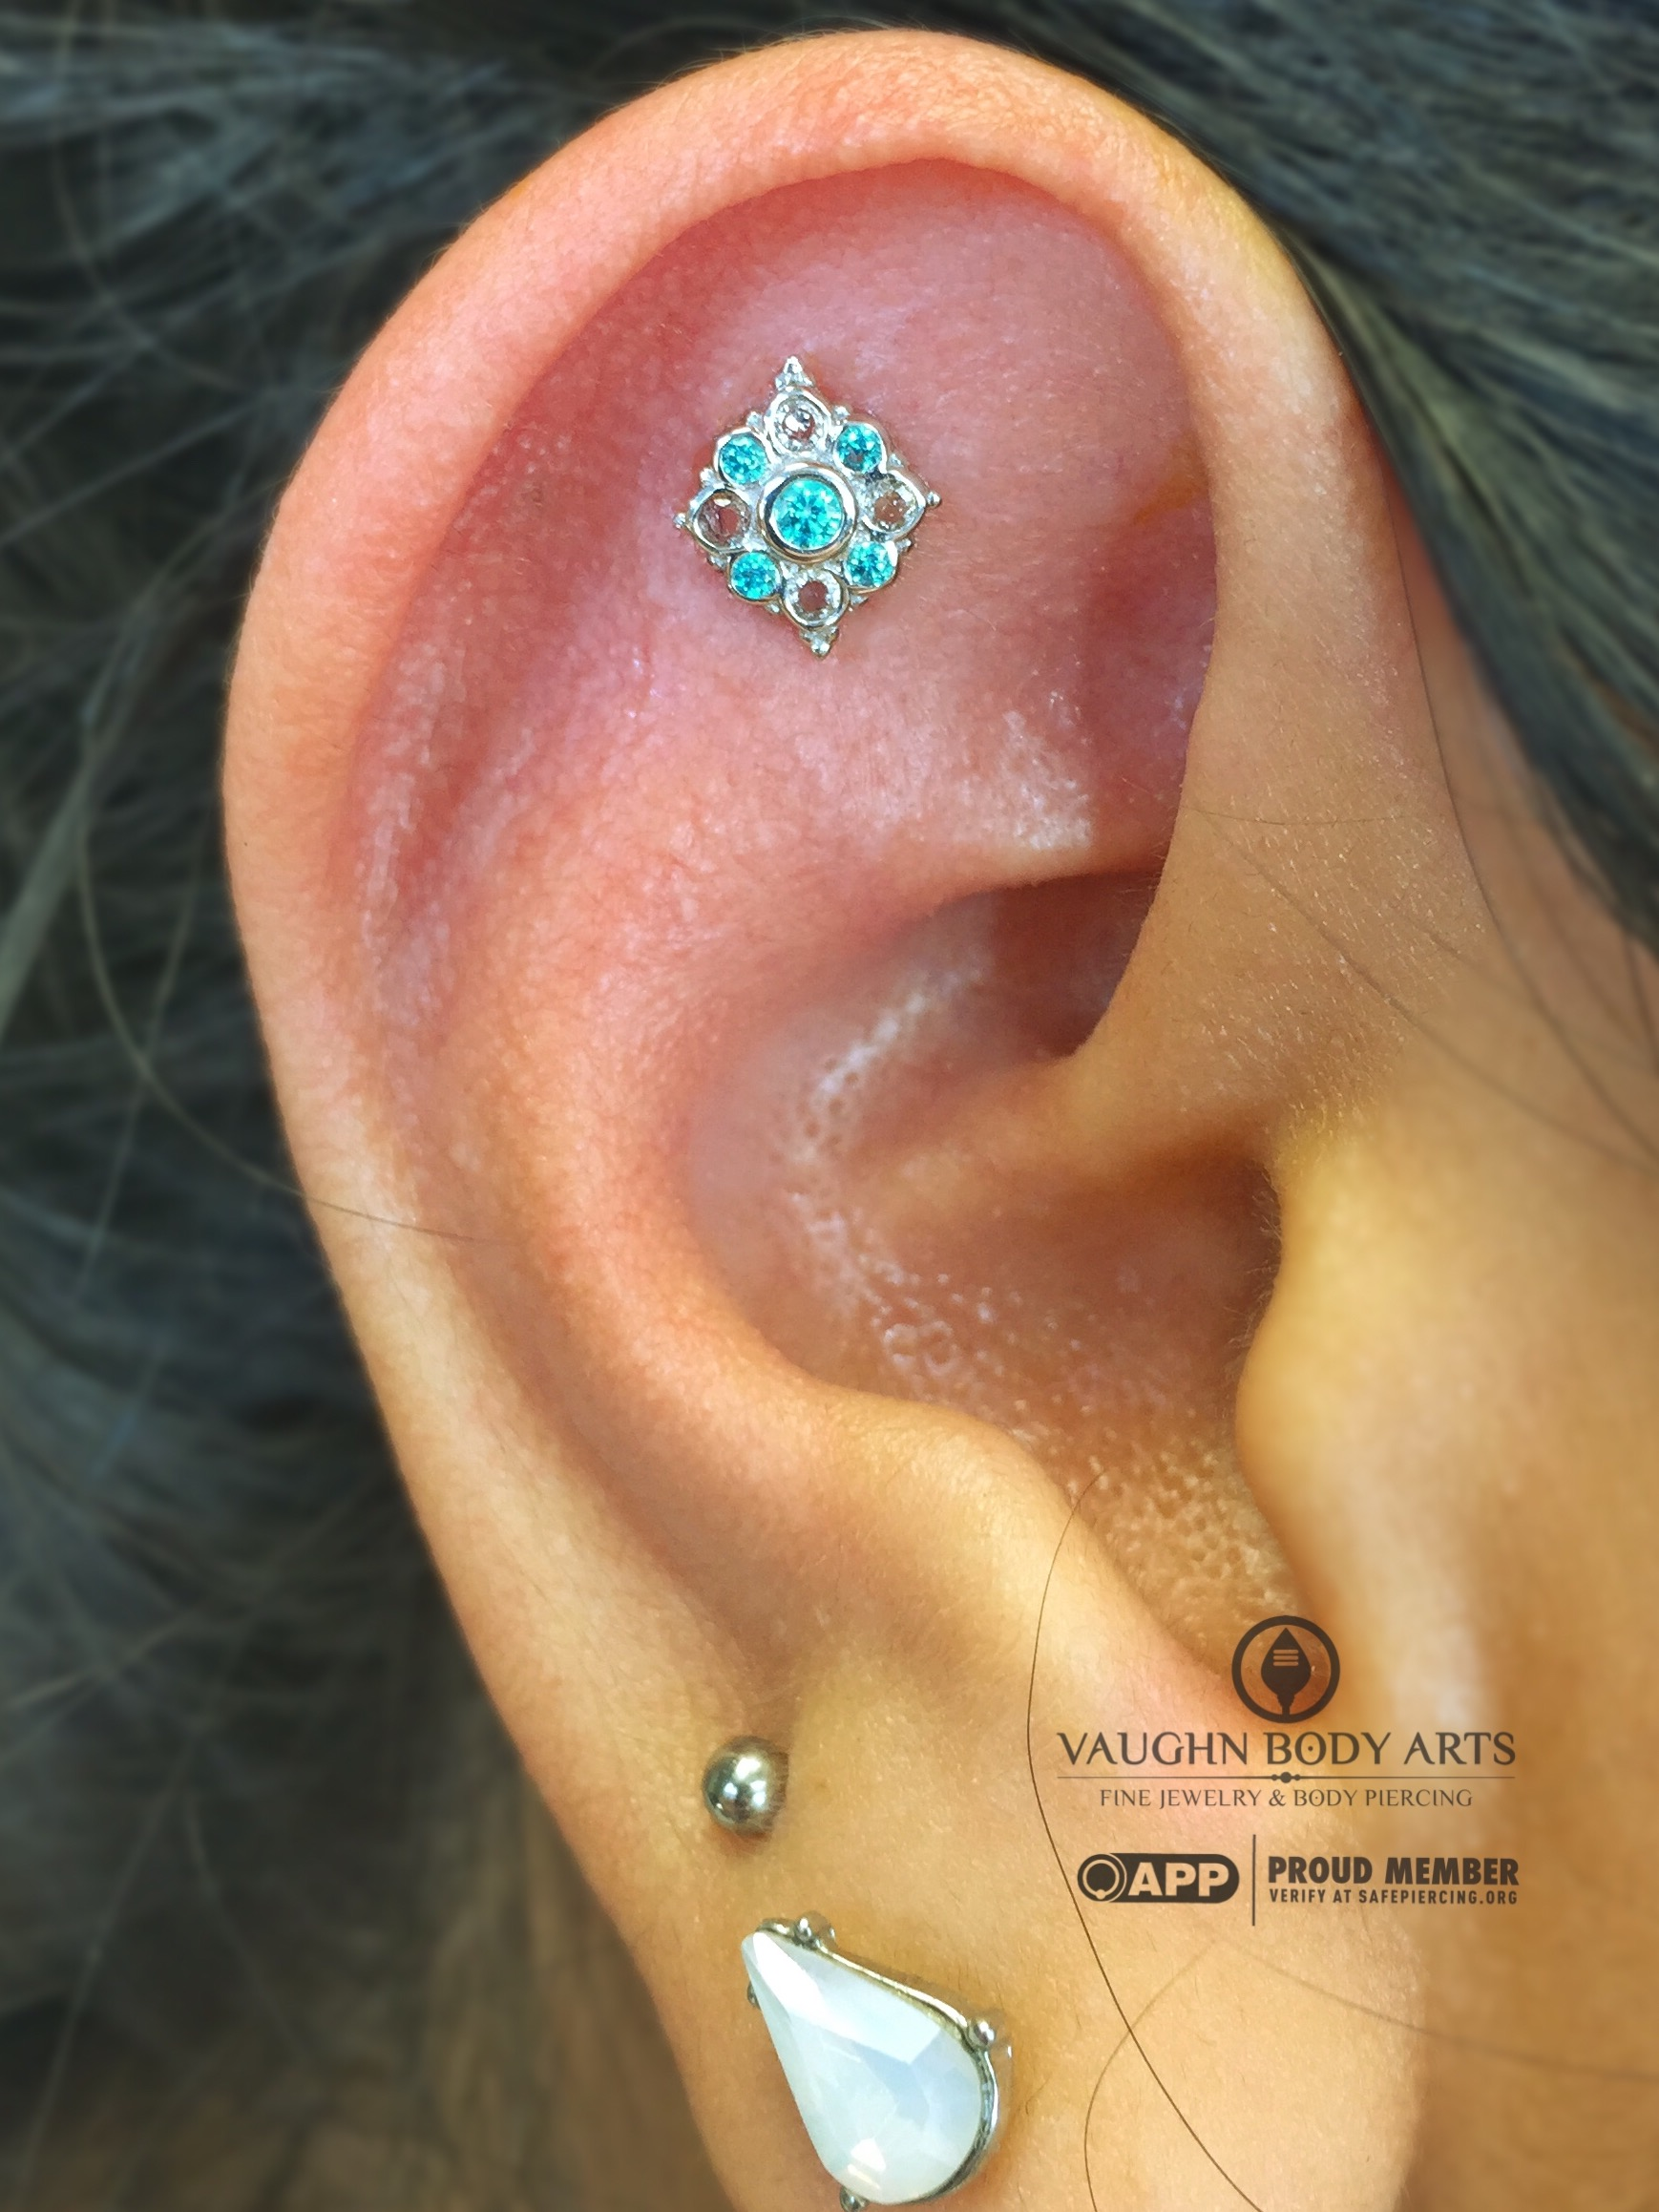 """Helix piercing with a 14k white gold """"Angela"""" end featuring mint green cz's and white sapphires from BVLA."""